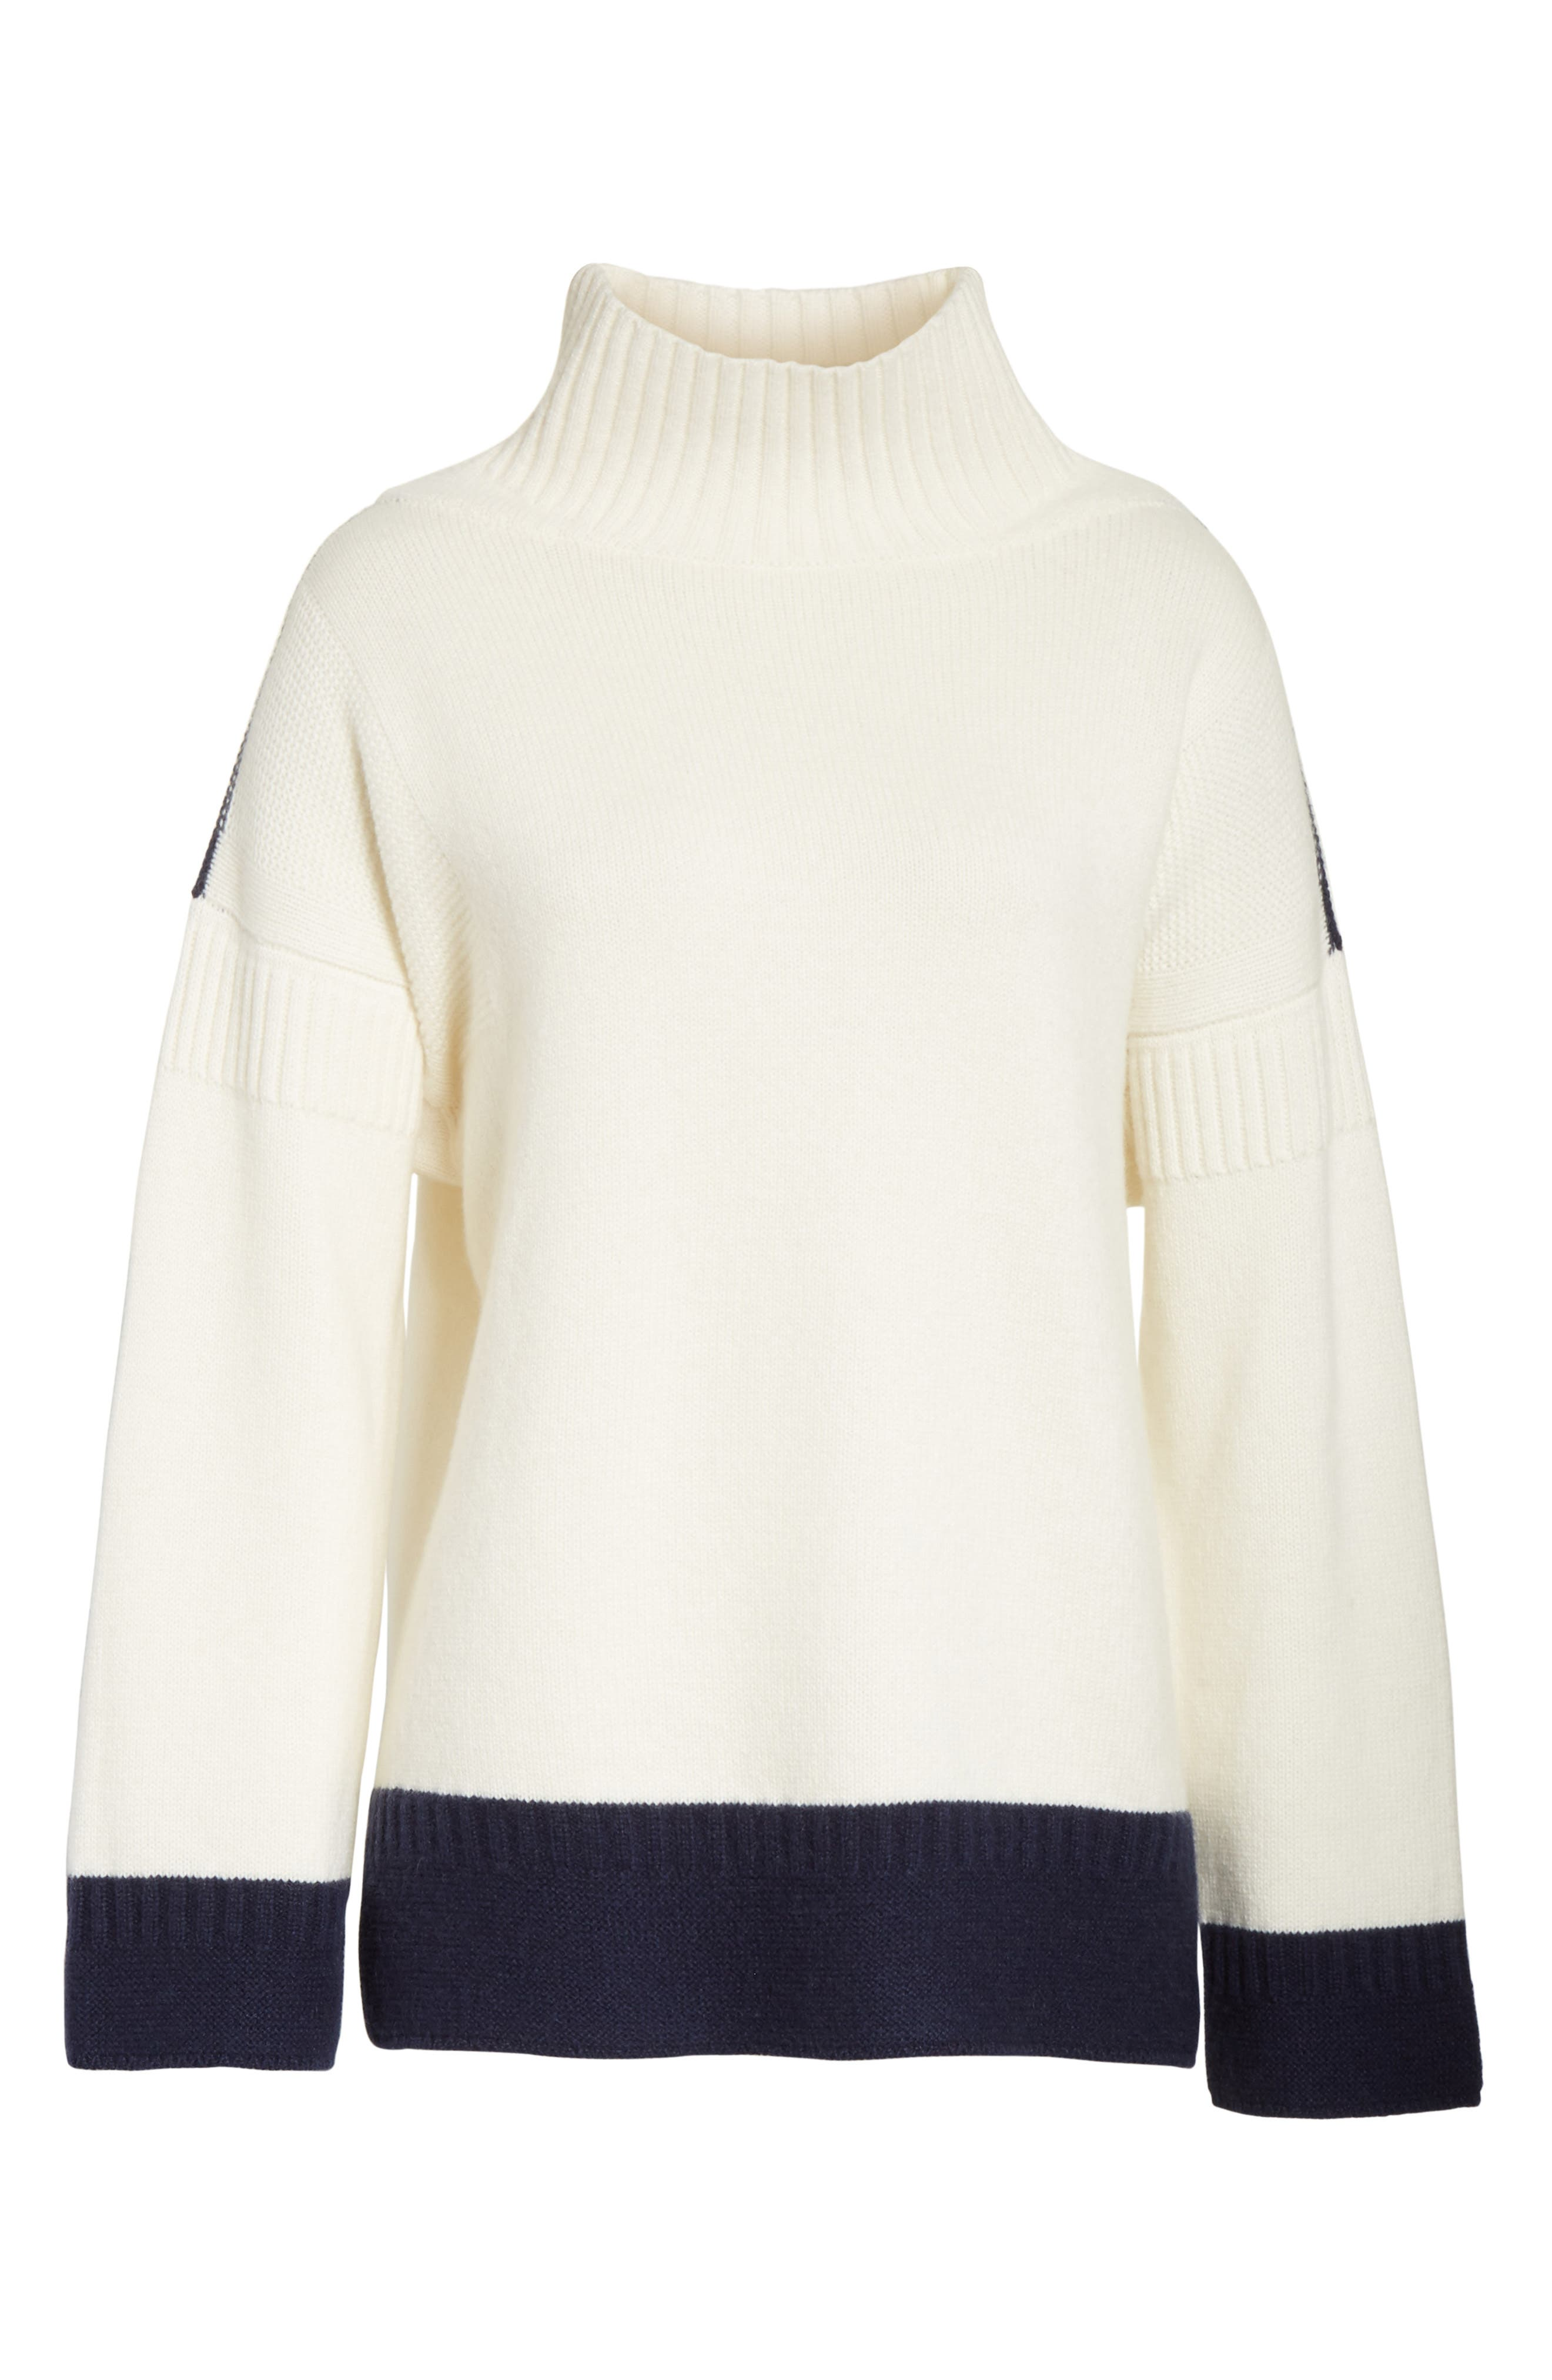 Aubree Funnel Neck Cashmere Sweater,                             Alternate thumbnail 6, color,                             Ivory/Navy